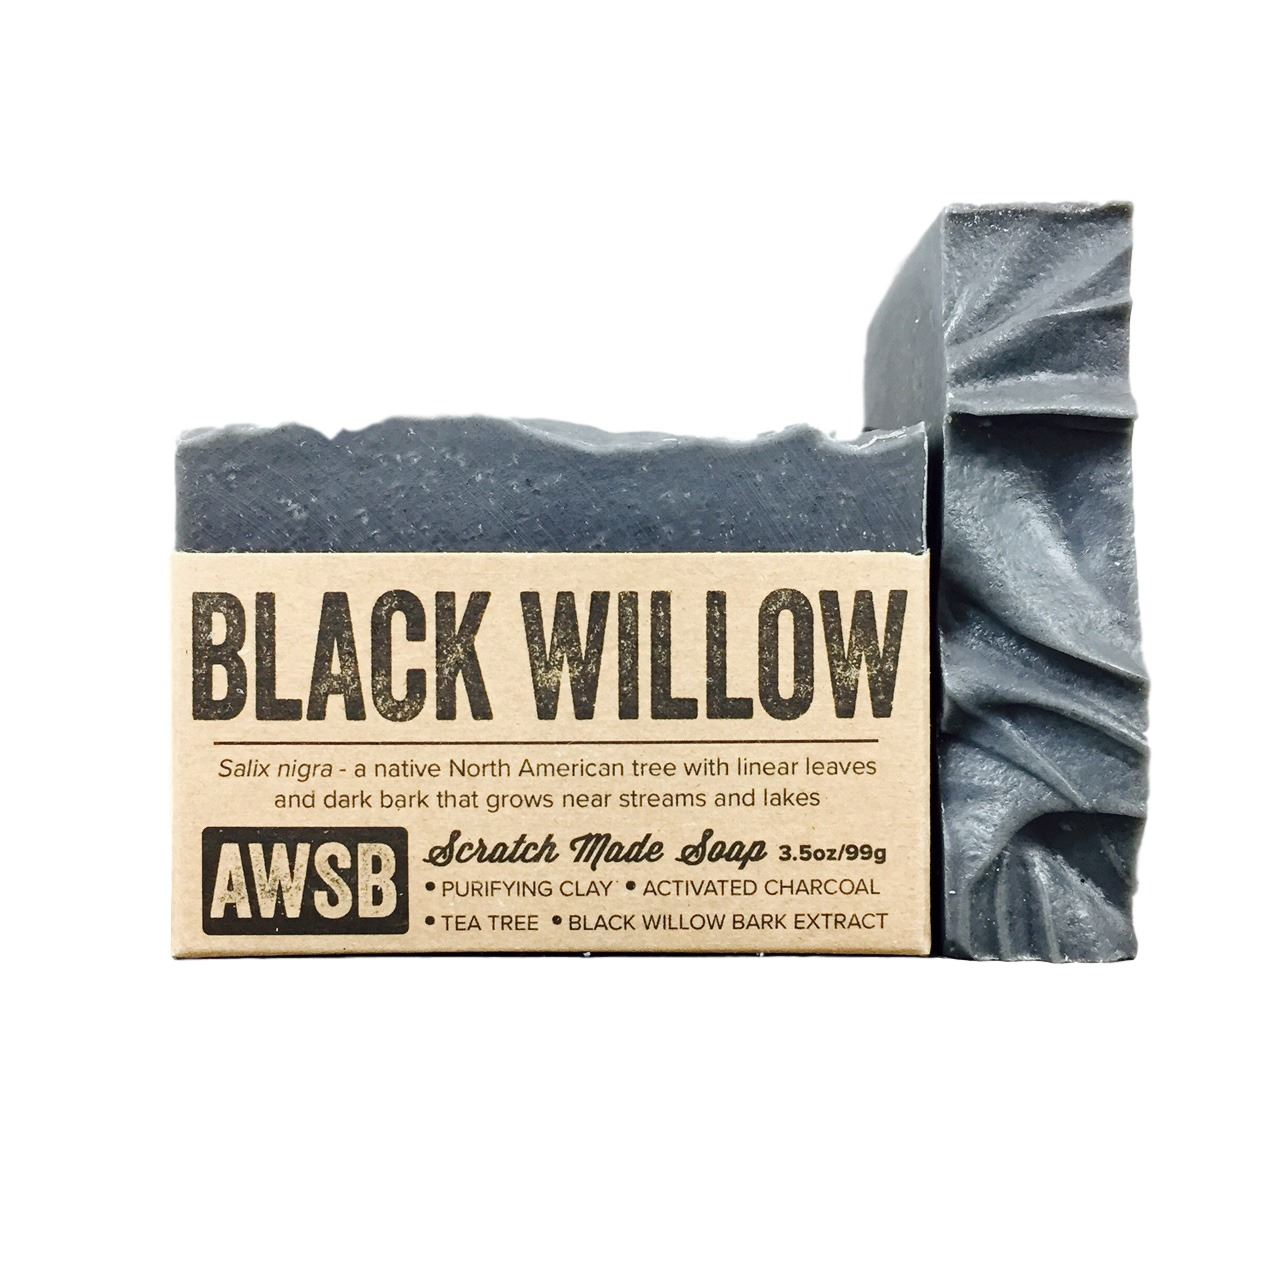 black willow soap  black willow bark,soap,natural,handmade,organic,acne,eucalyptus,charcoal,purifying,activated charcoal,tea tree,bamboo charcoal,toner,recipe,clear skin